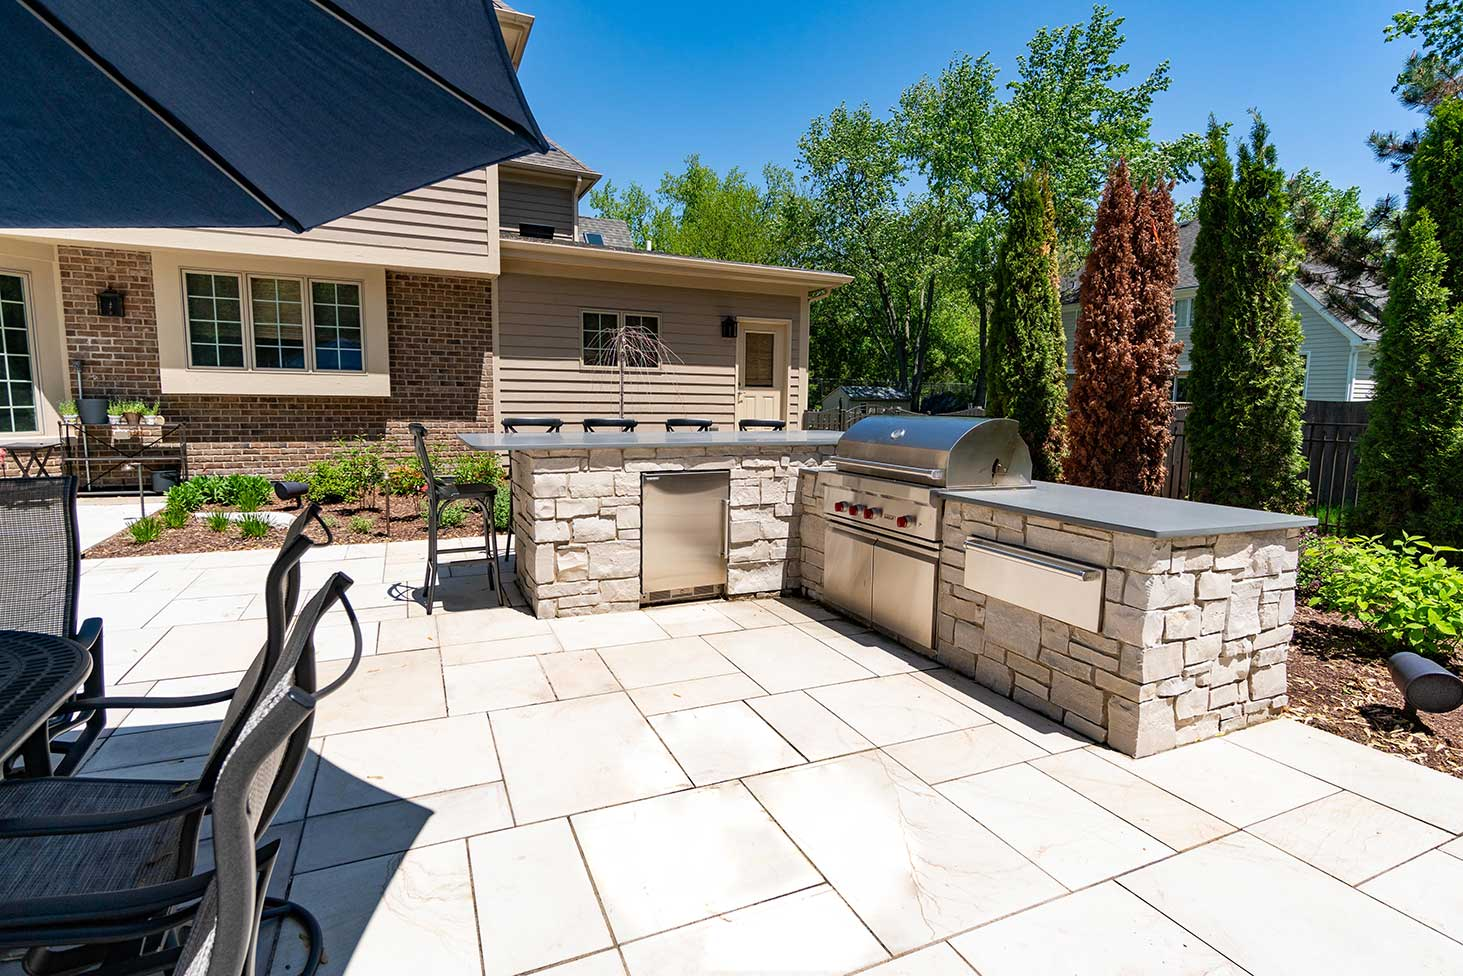 Pool house patio with stone grill and umbrella